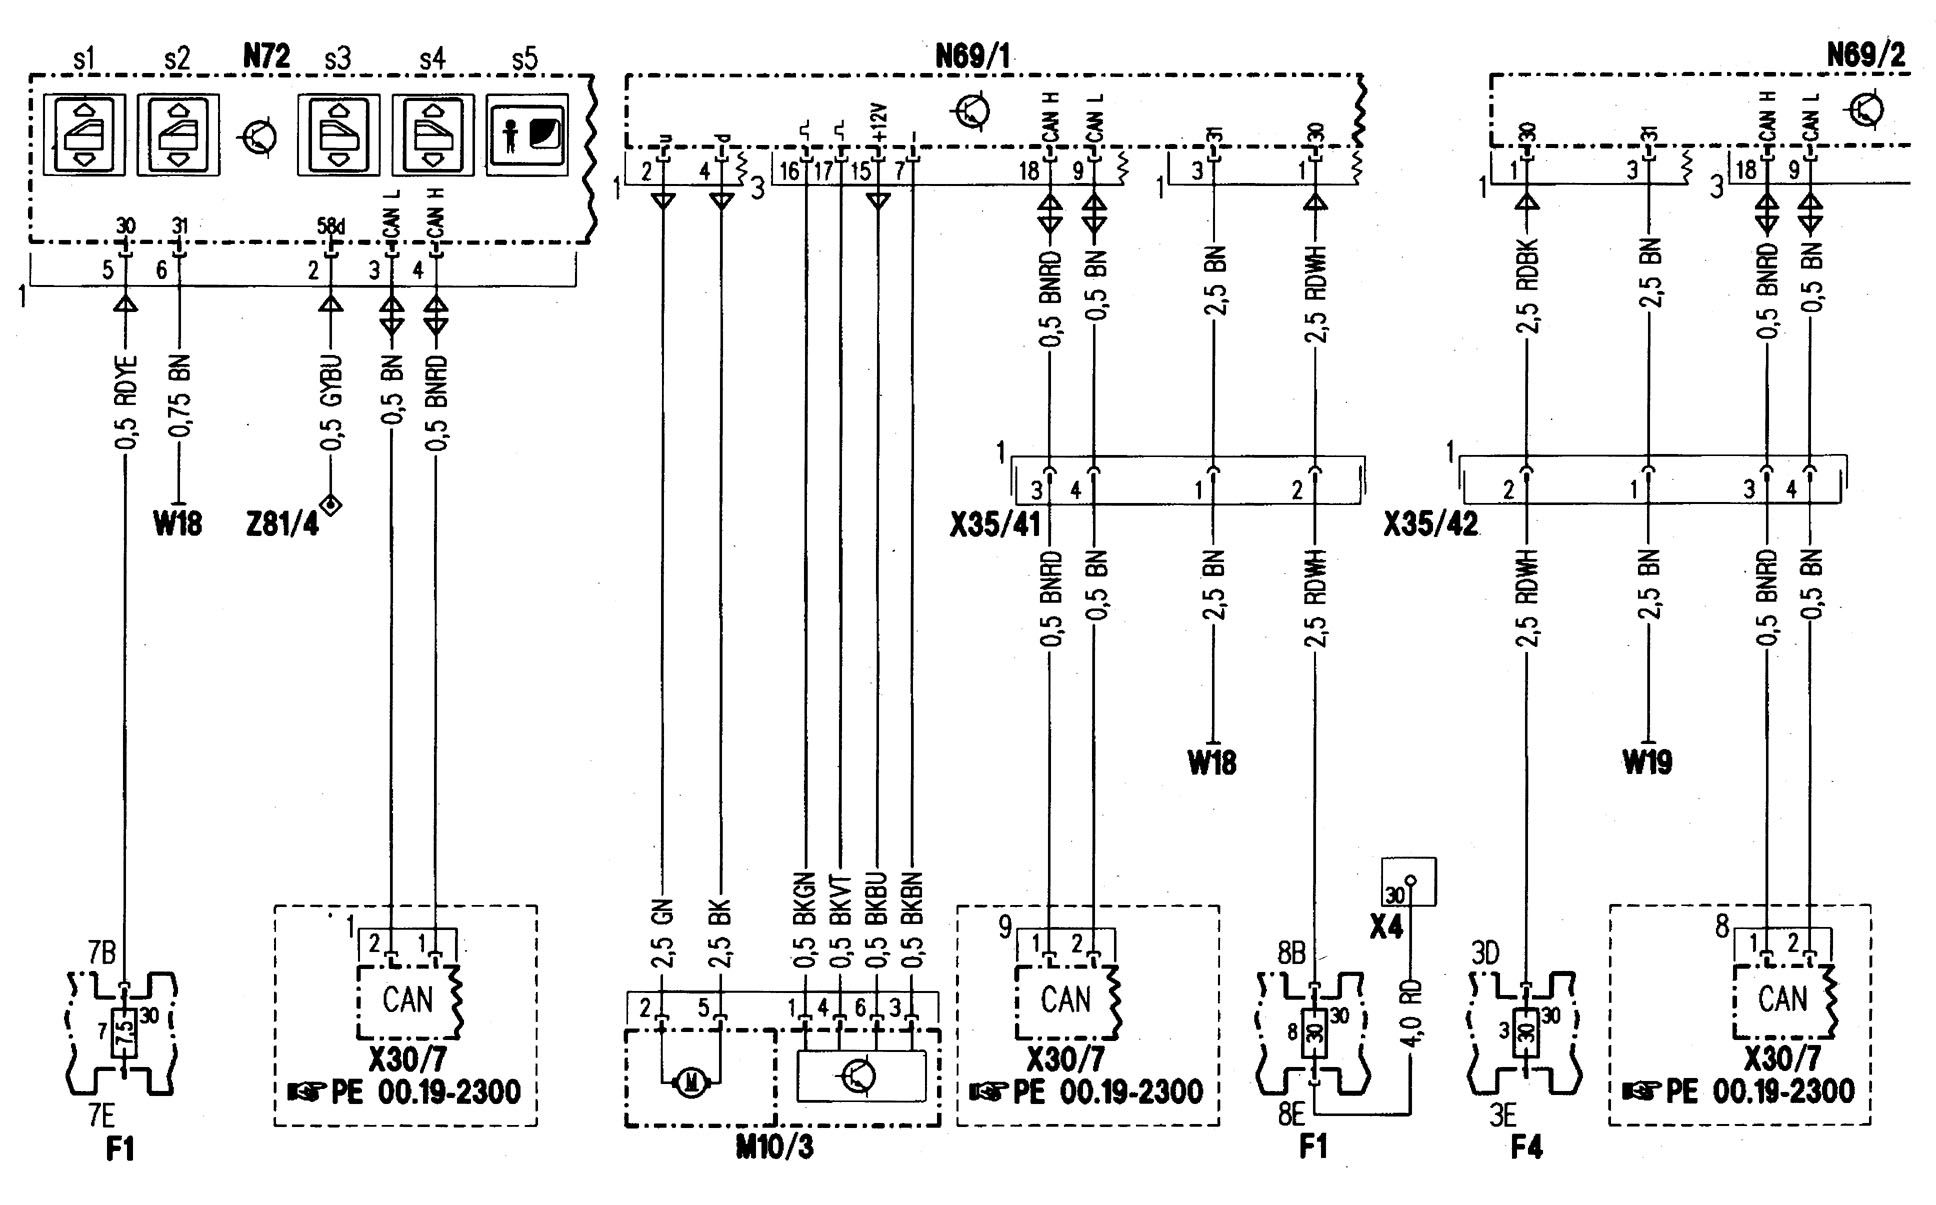 94 E420 Mercede Benz Wiring Diagram